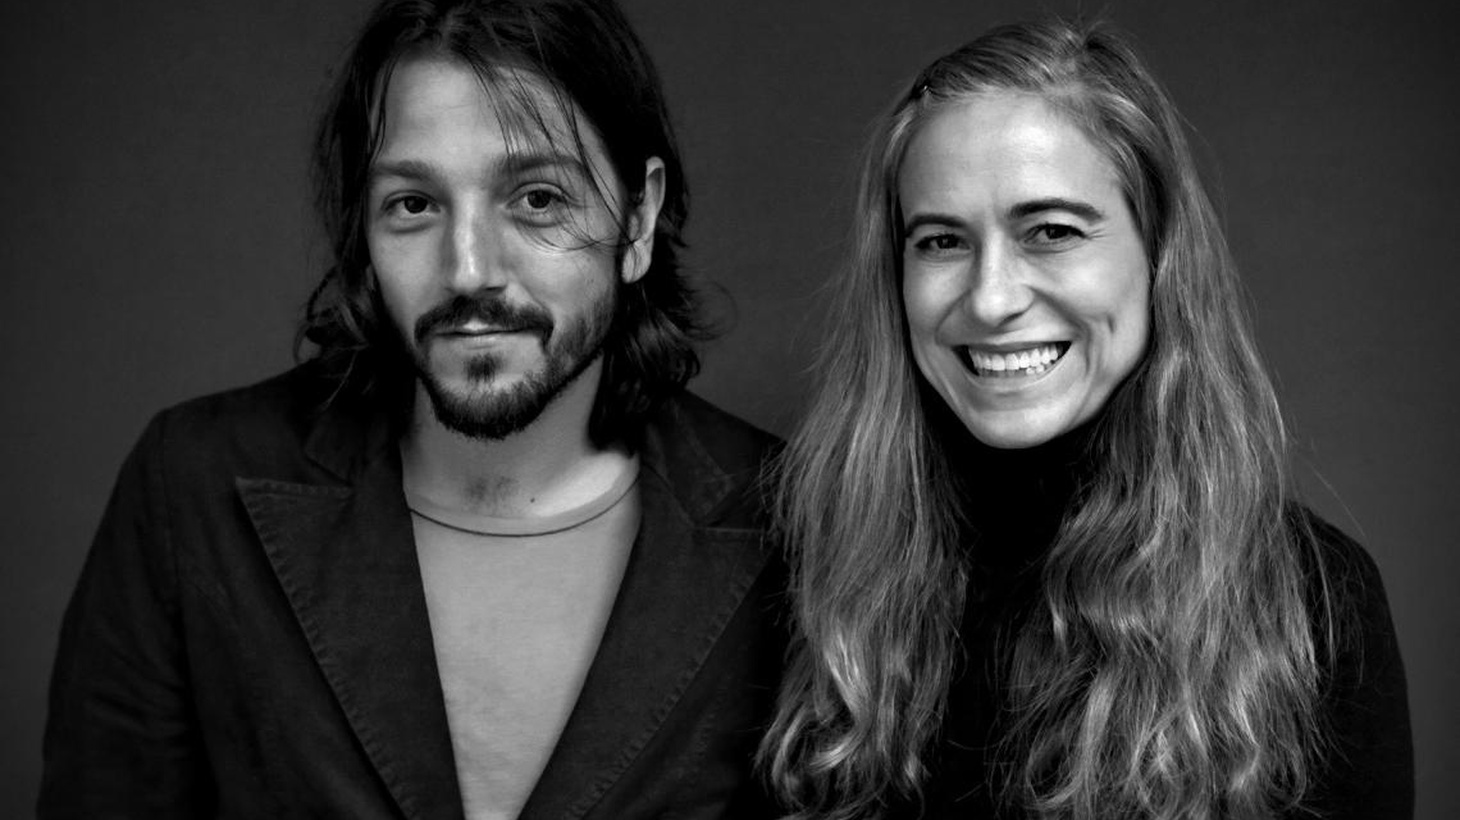 Actor Diego Luna takes us on a musical journey through his life with host Liza Richardson.